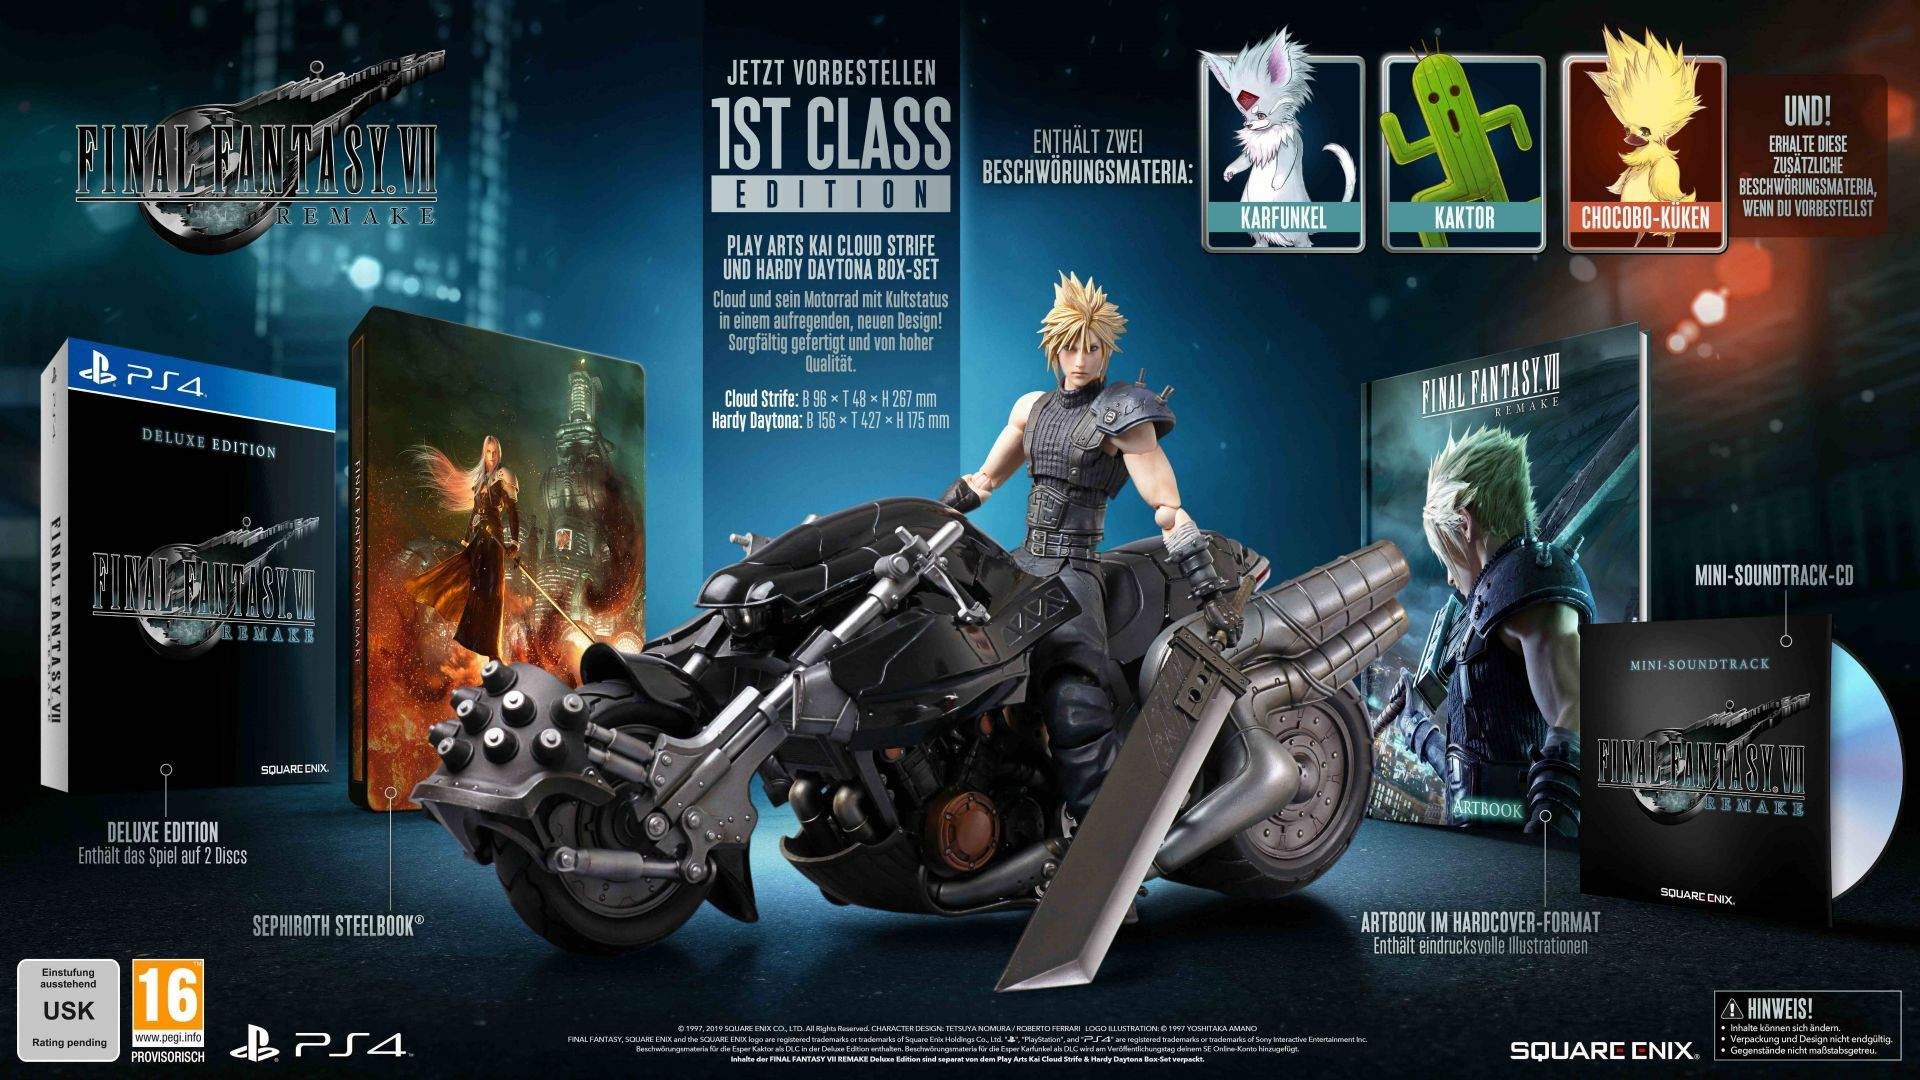 Final-Fantasy-VII-Remake-1st-Class-Edition-Bild-1